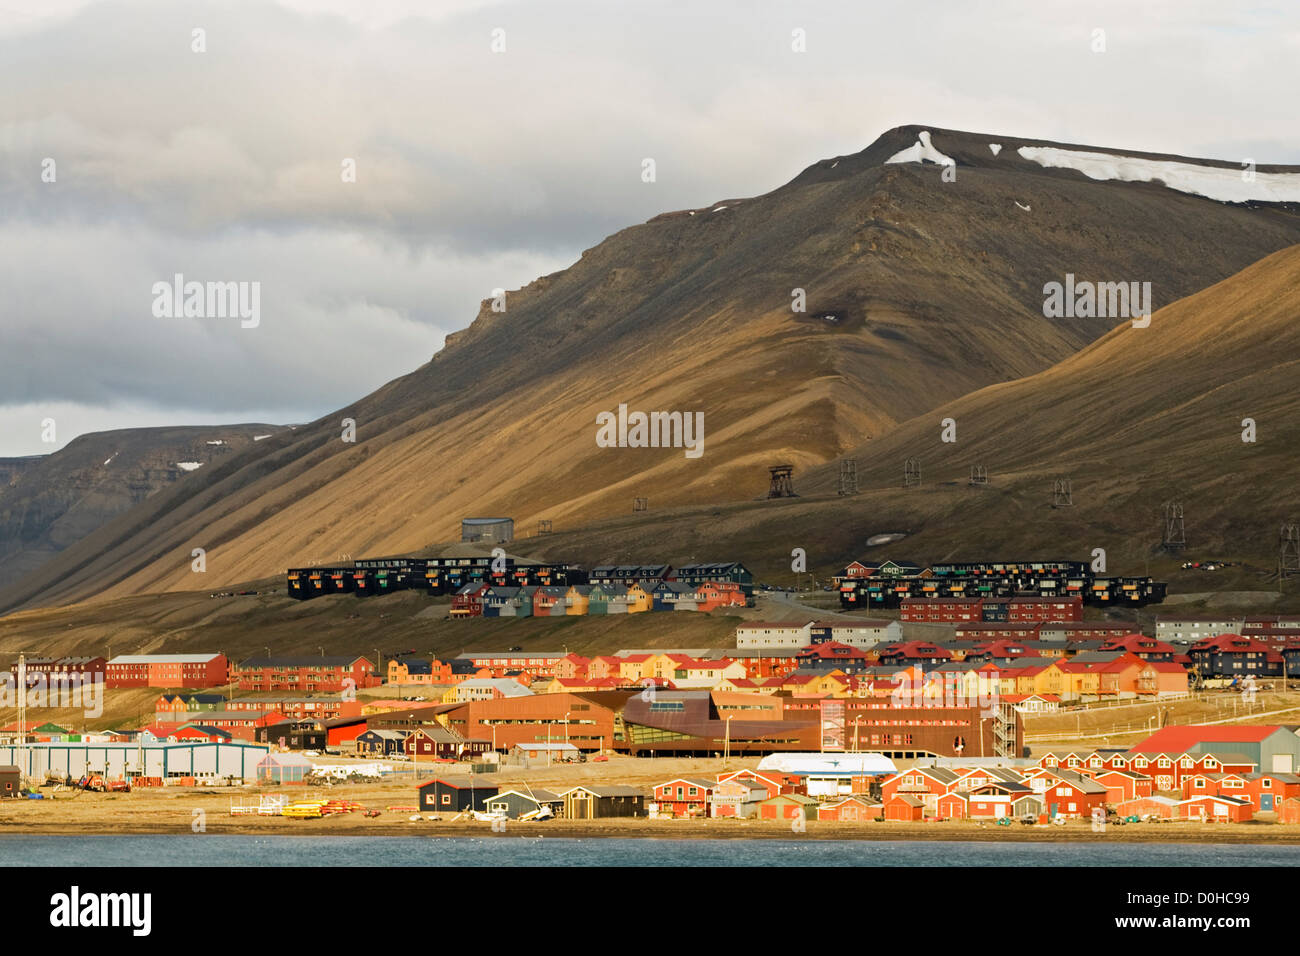 Colorful Norwegian settlement Longyearbyen largest settlement in Svalbard coal mining town year round population - Stock Image